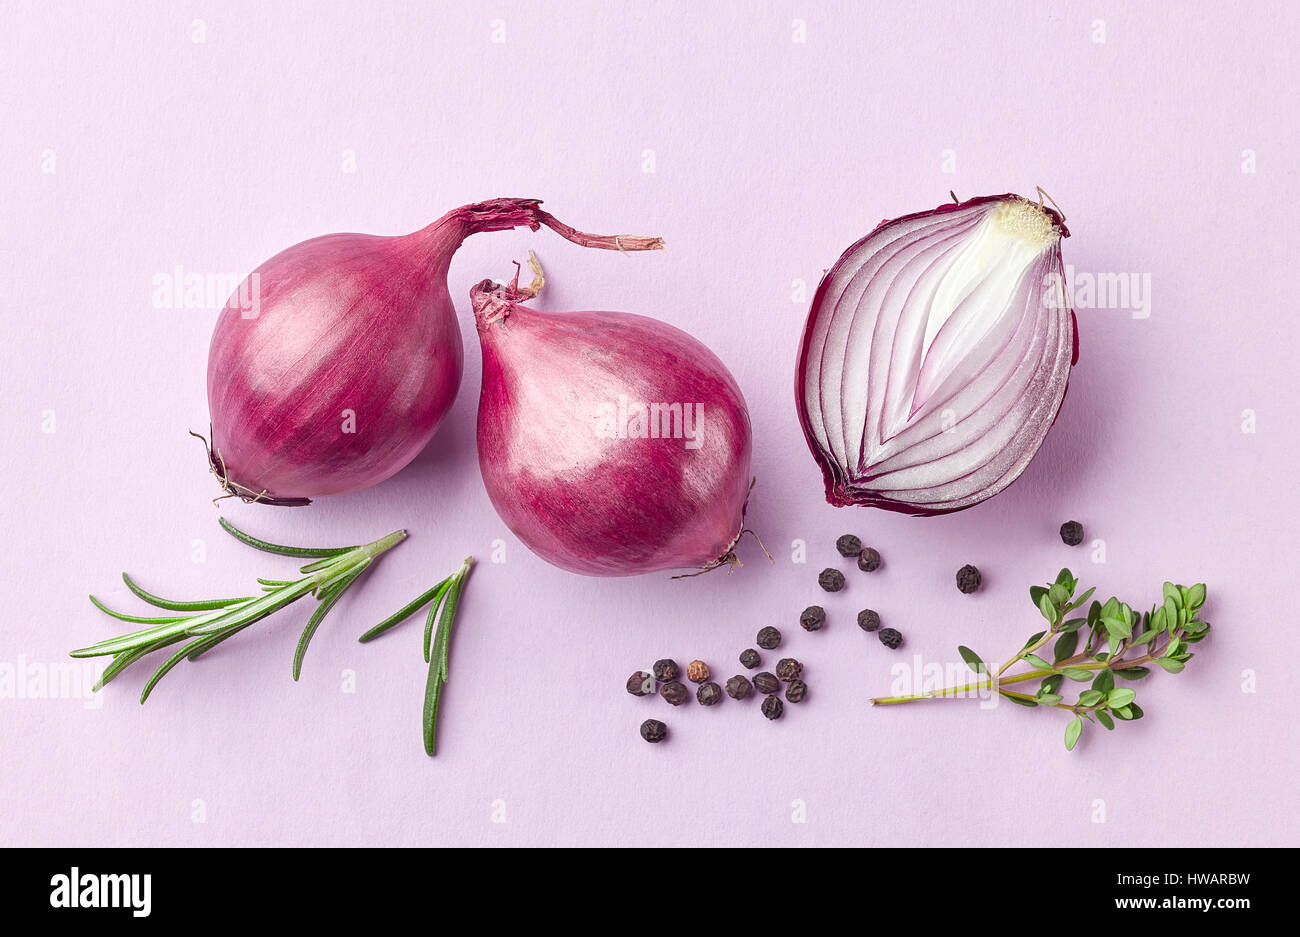 red onions and spices on purple background, top view - Stock Image